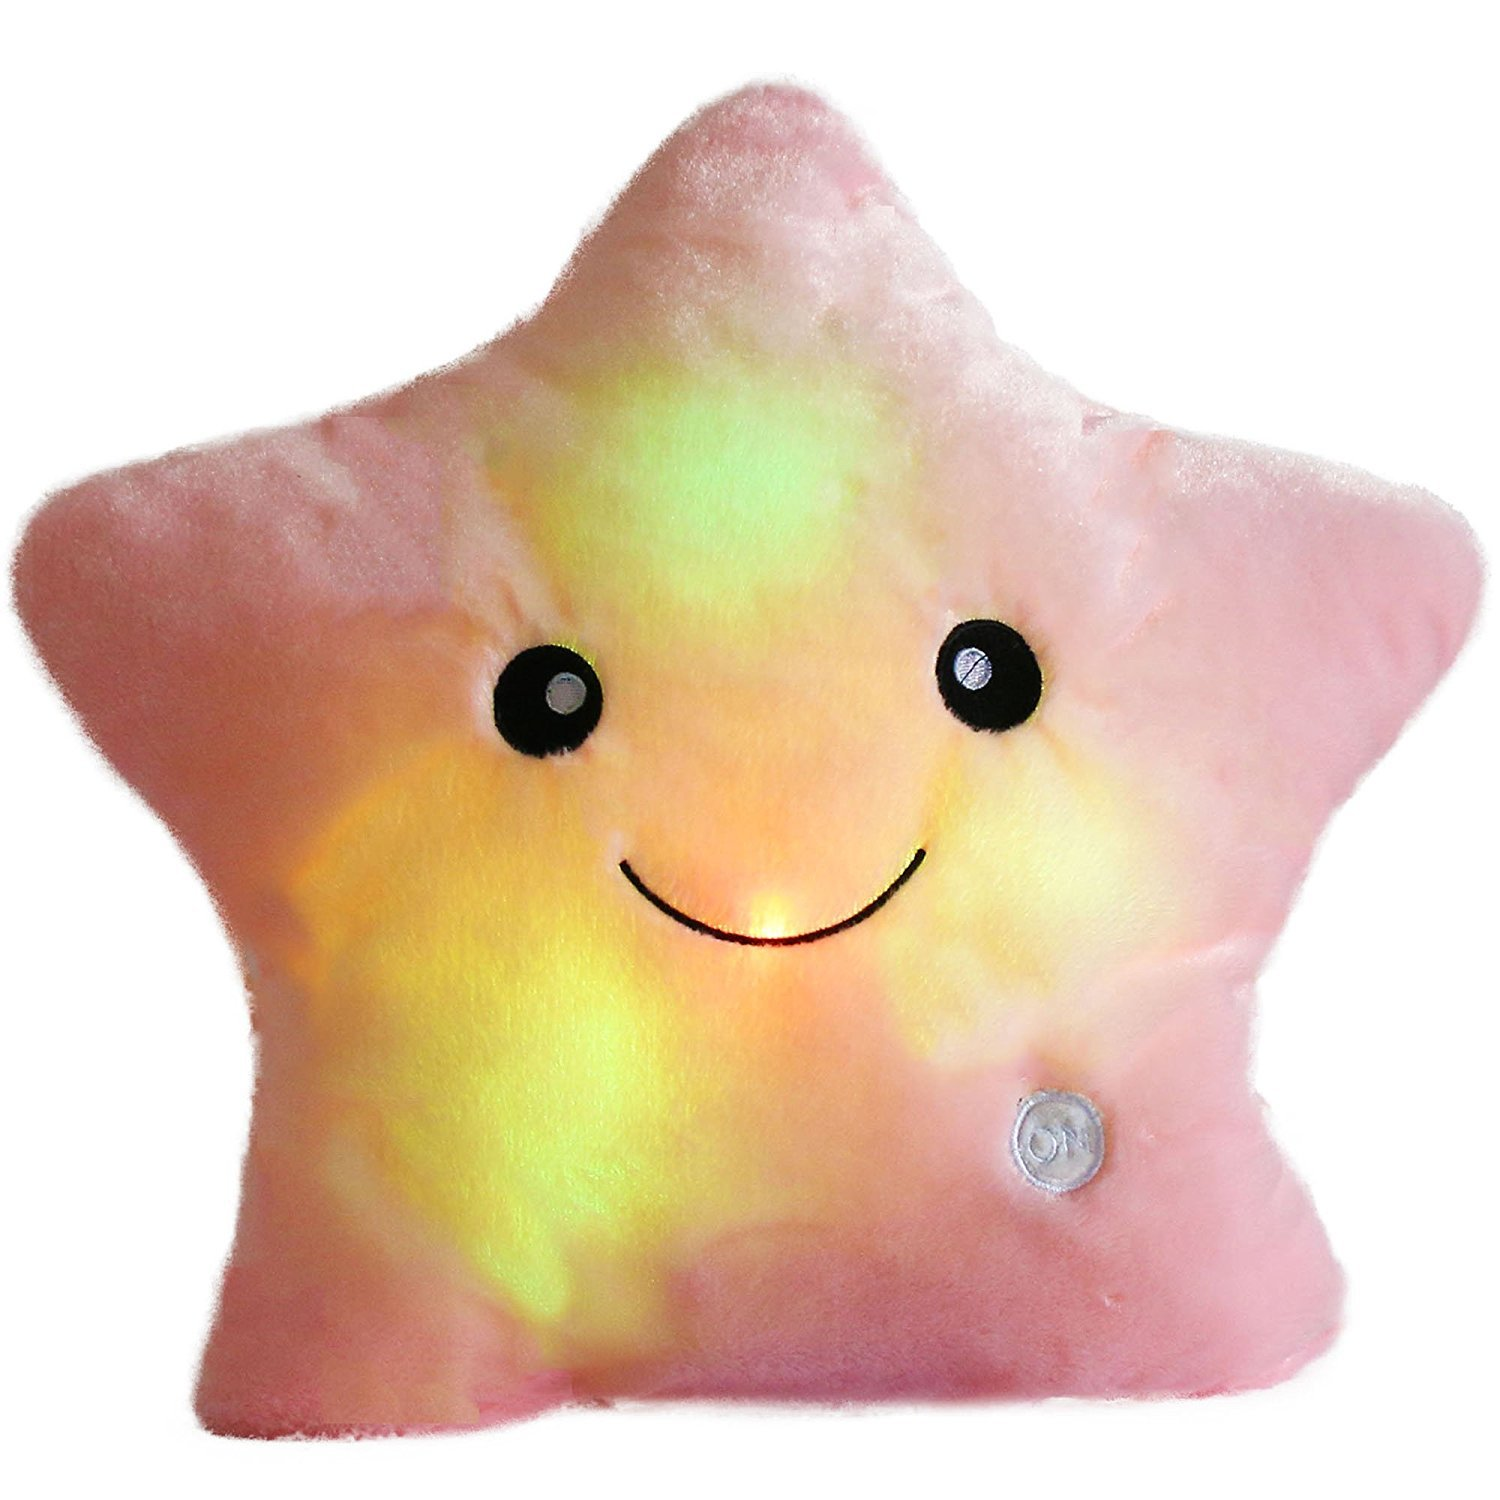 LED Star Pillow Cushions Glowing LED Night Light Star Shape Plush Pillow Stuffed Soft Toys